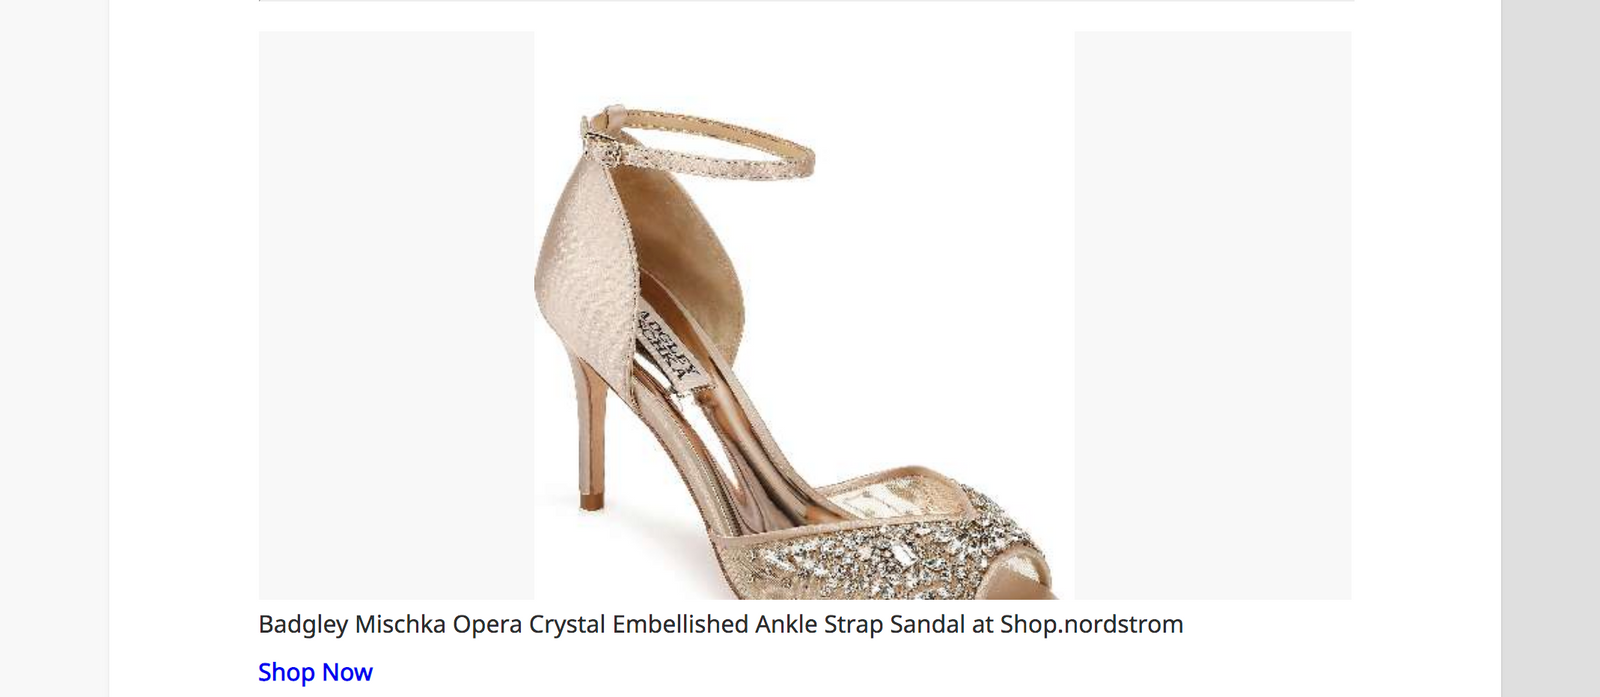 DailyHunt English  IND • Dec 19 • 9:32 pm     Entertainment Mira Rajput wore this metallic gown for Vogue India  Badgley Mischka Opera Crystal Embellished Ankle Strap Sandal at...